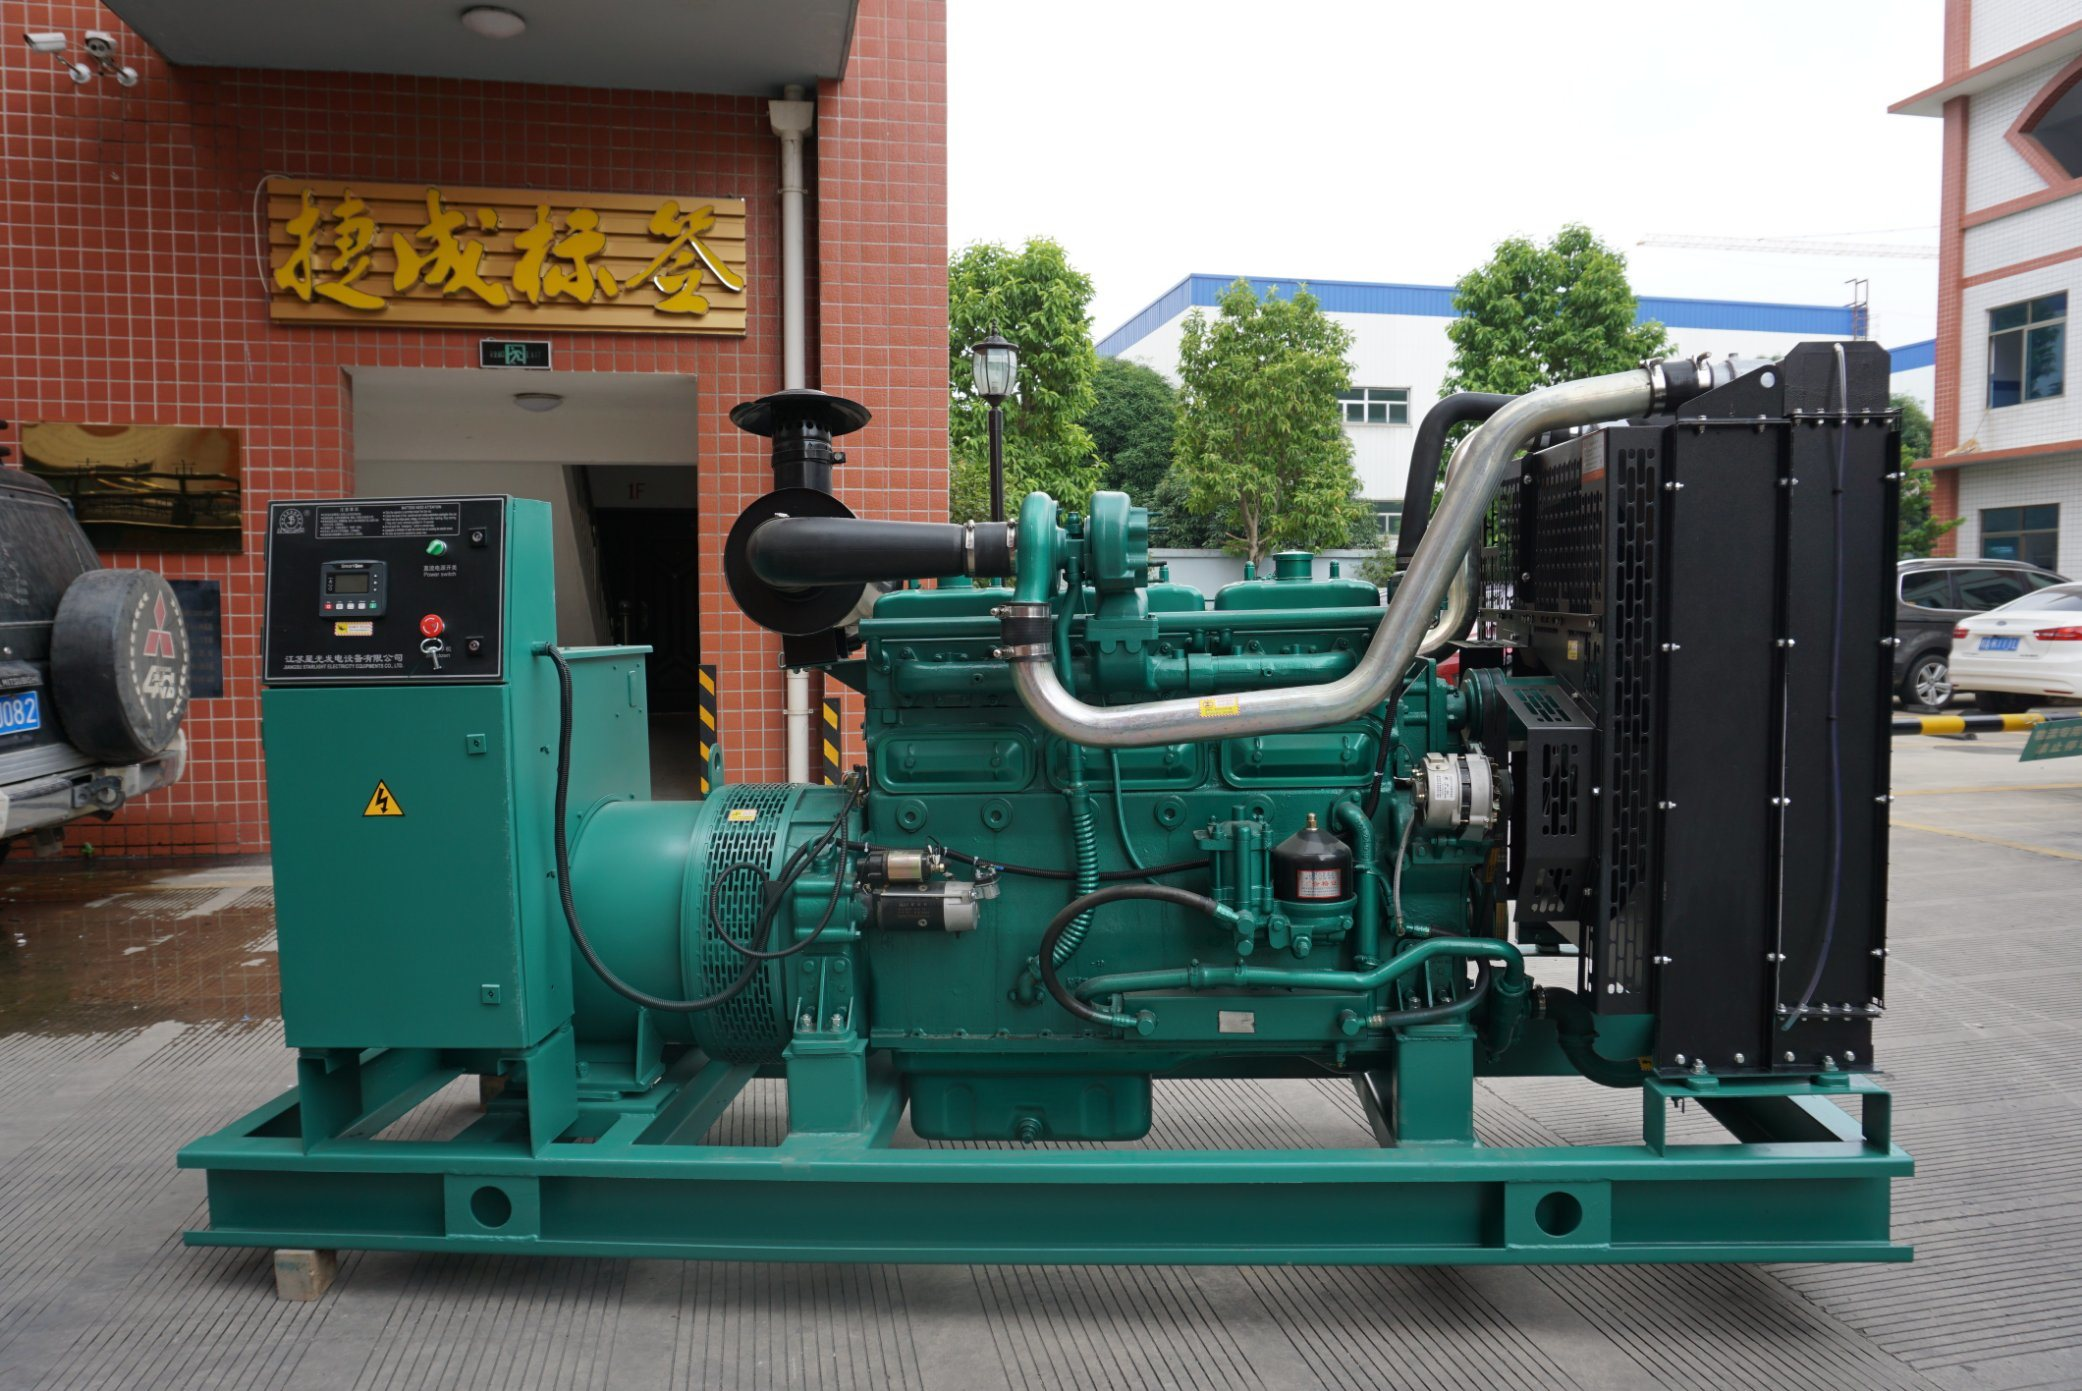 [Hot Item] Ricardo 75kw Diesel Generator Set with Engine R6105zd Mechanical  Governor Type